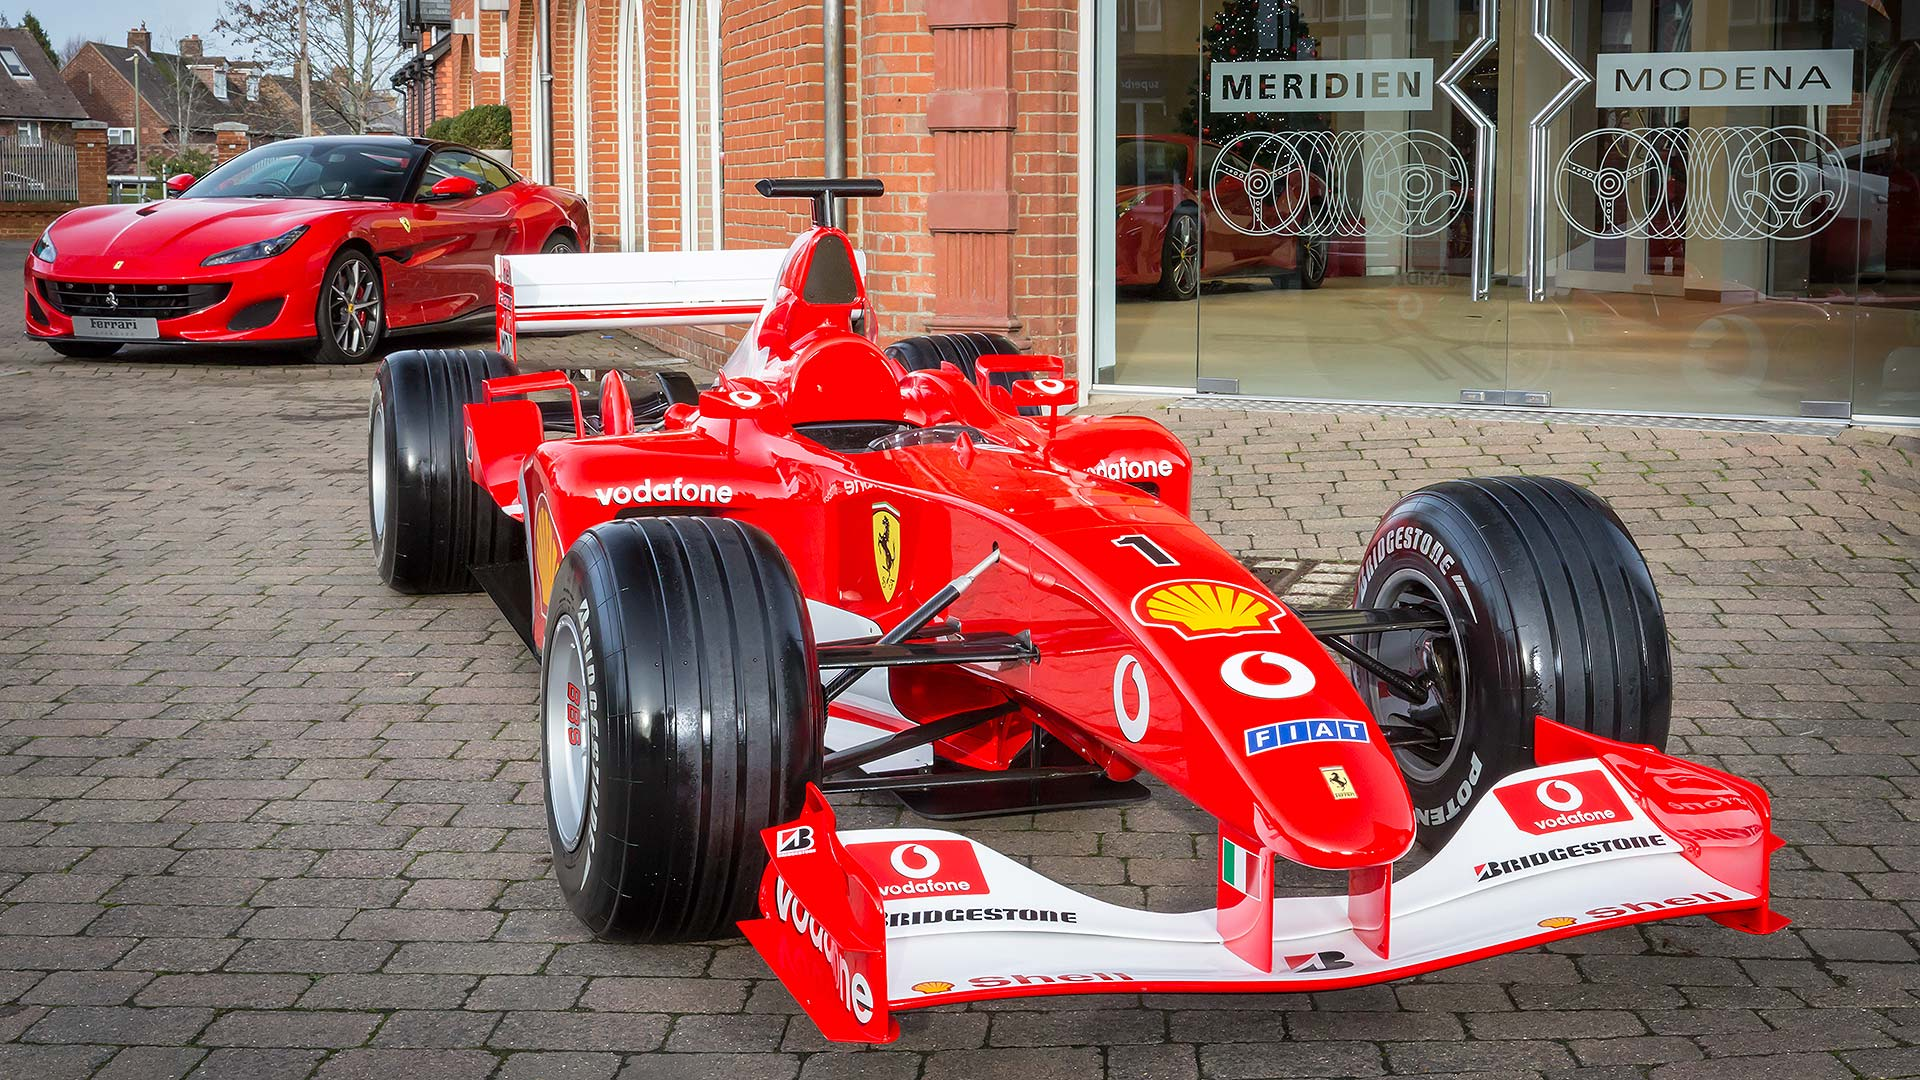 Meridien Modena's prize F1 car for being named Ferrari Dealer of the Year 2018